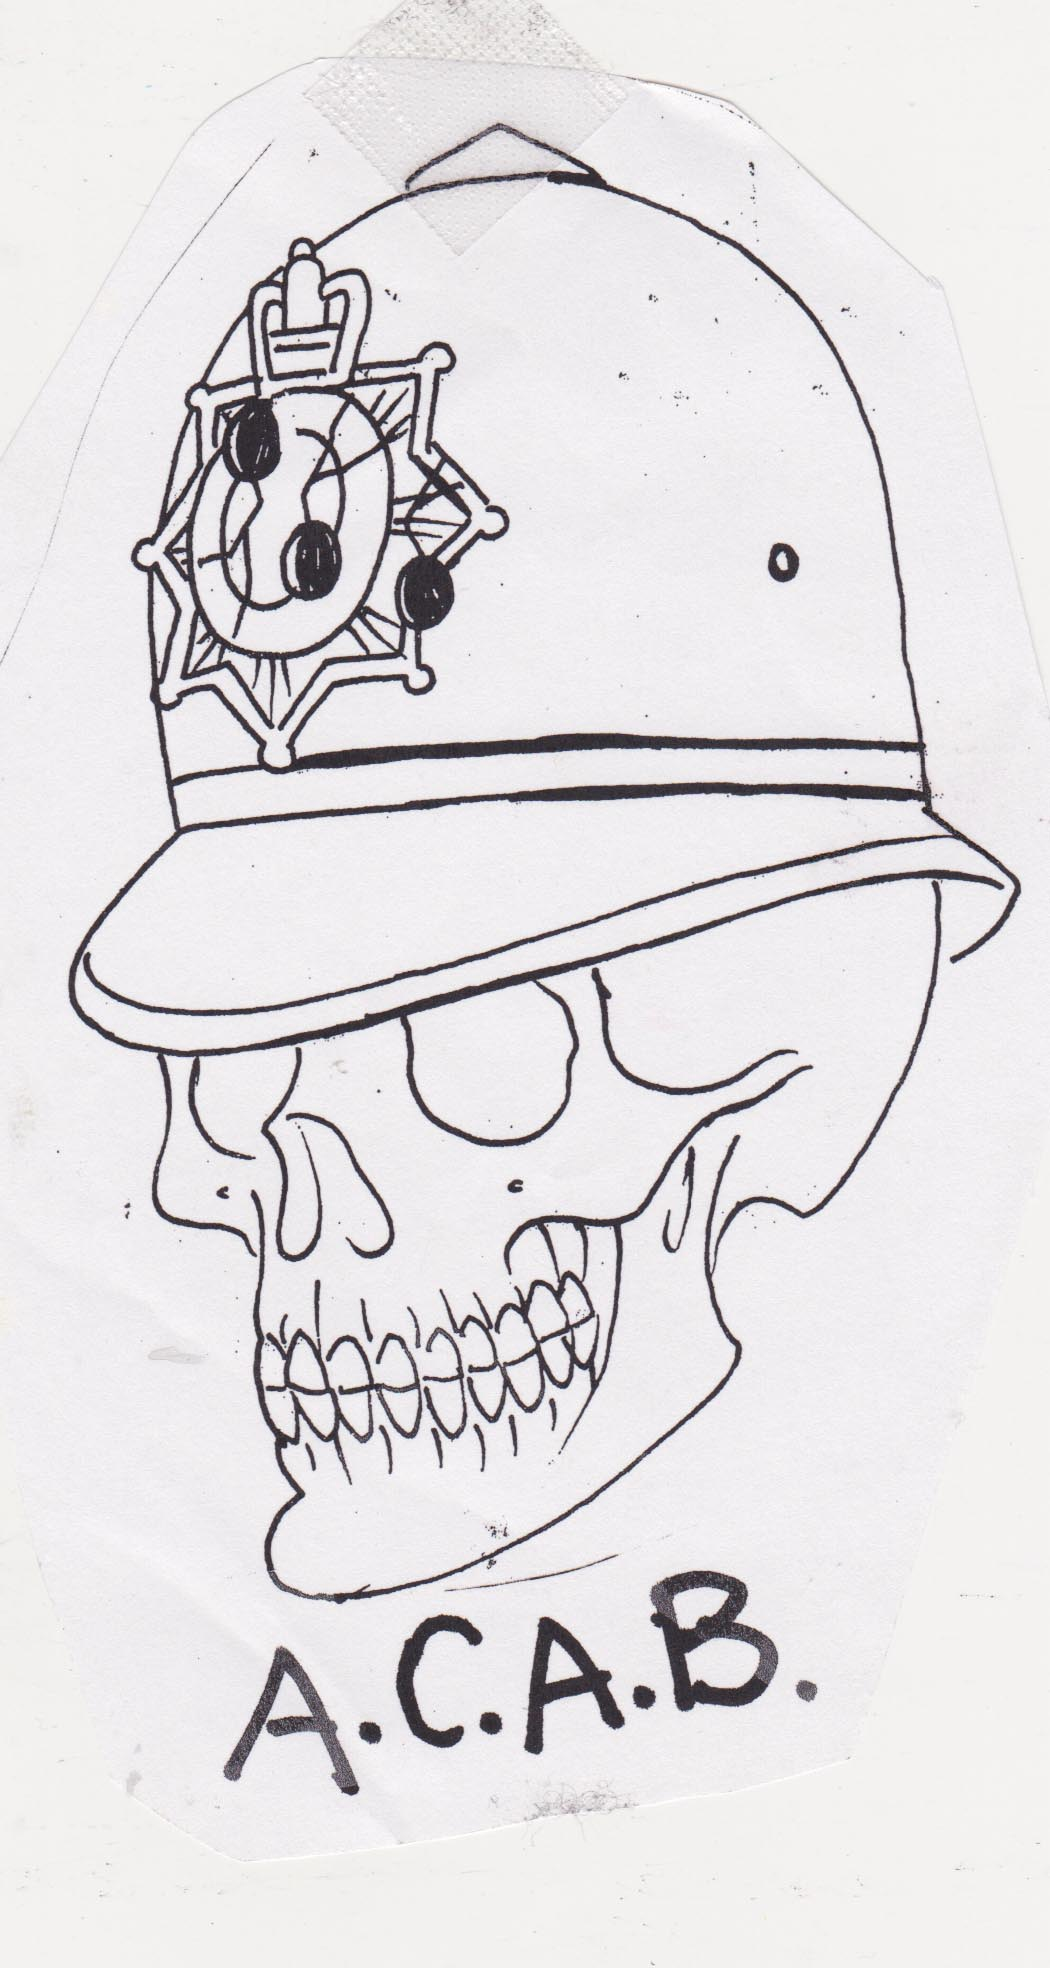 A C A B Doyle Tattoo Ideas And Designs